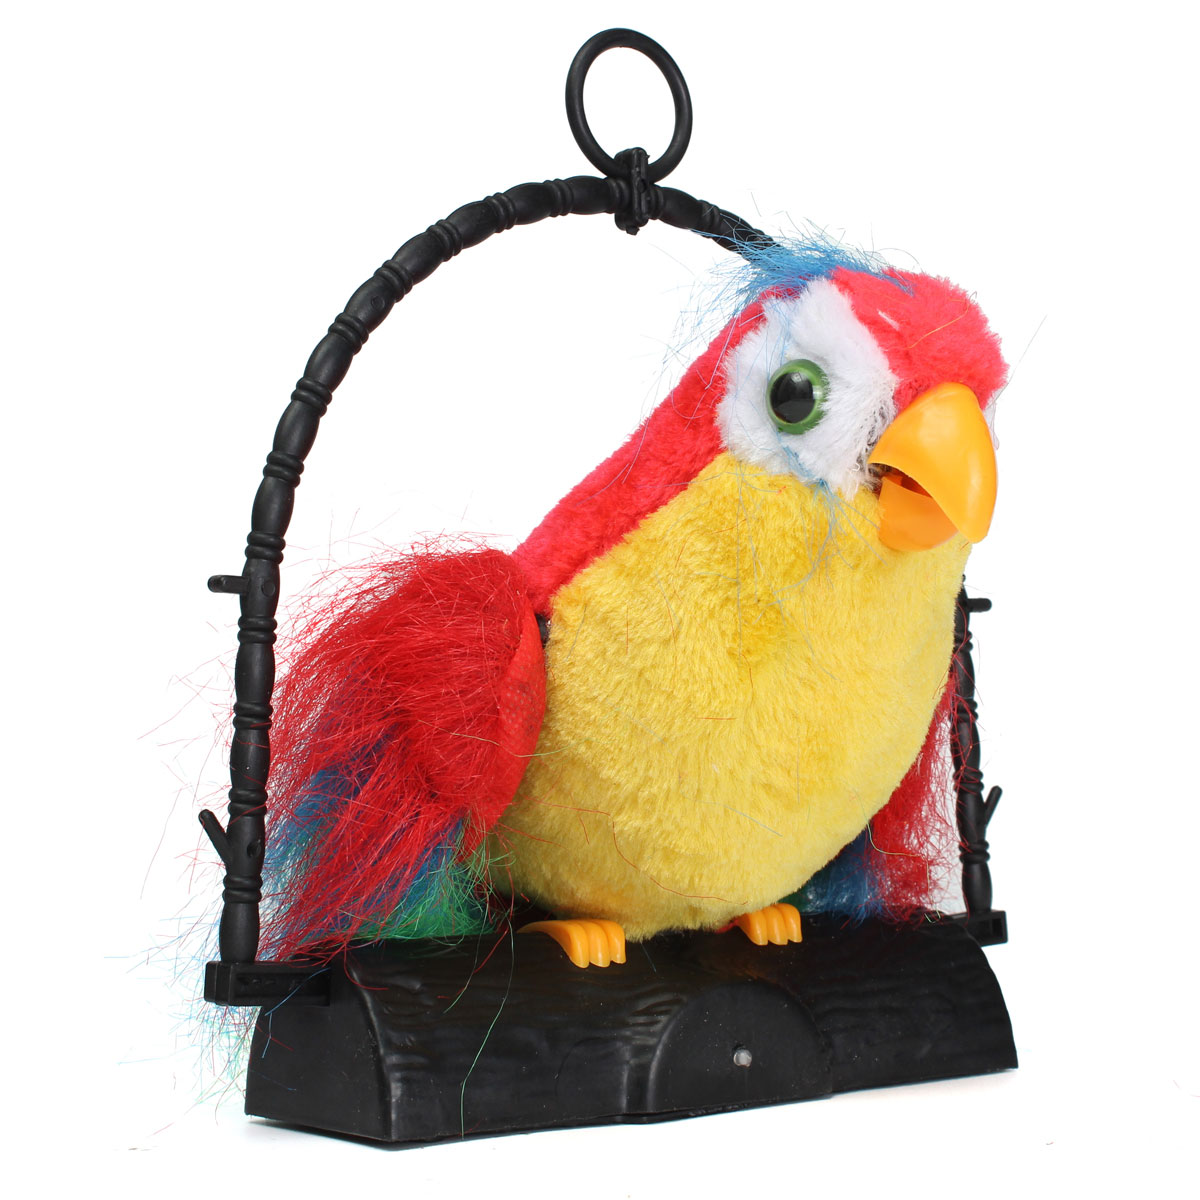 Talking Parrot Repeats What You Say Cute Toys Bird Boxed